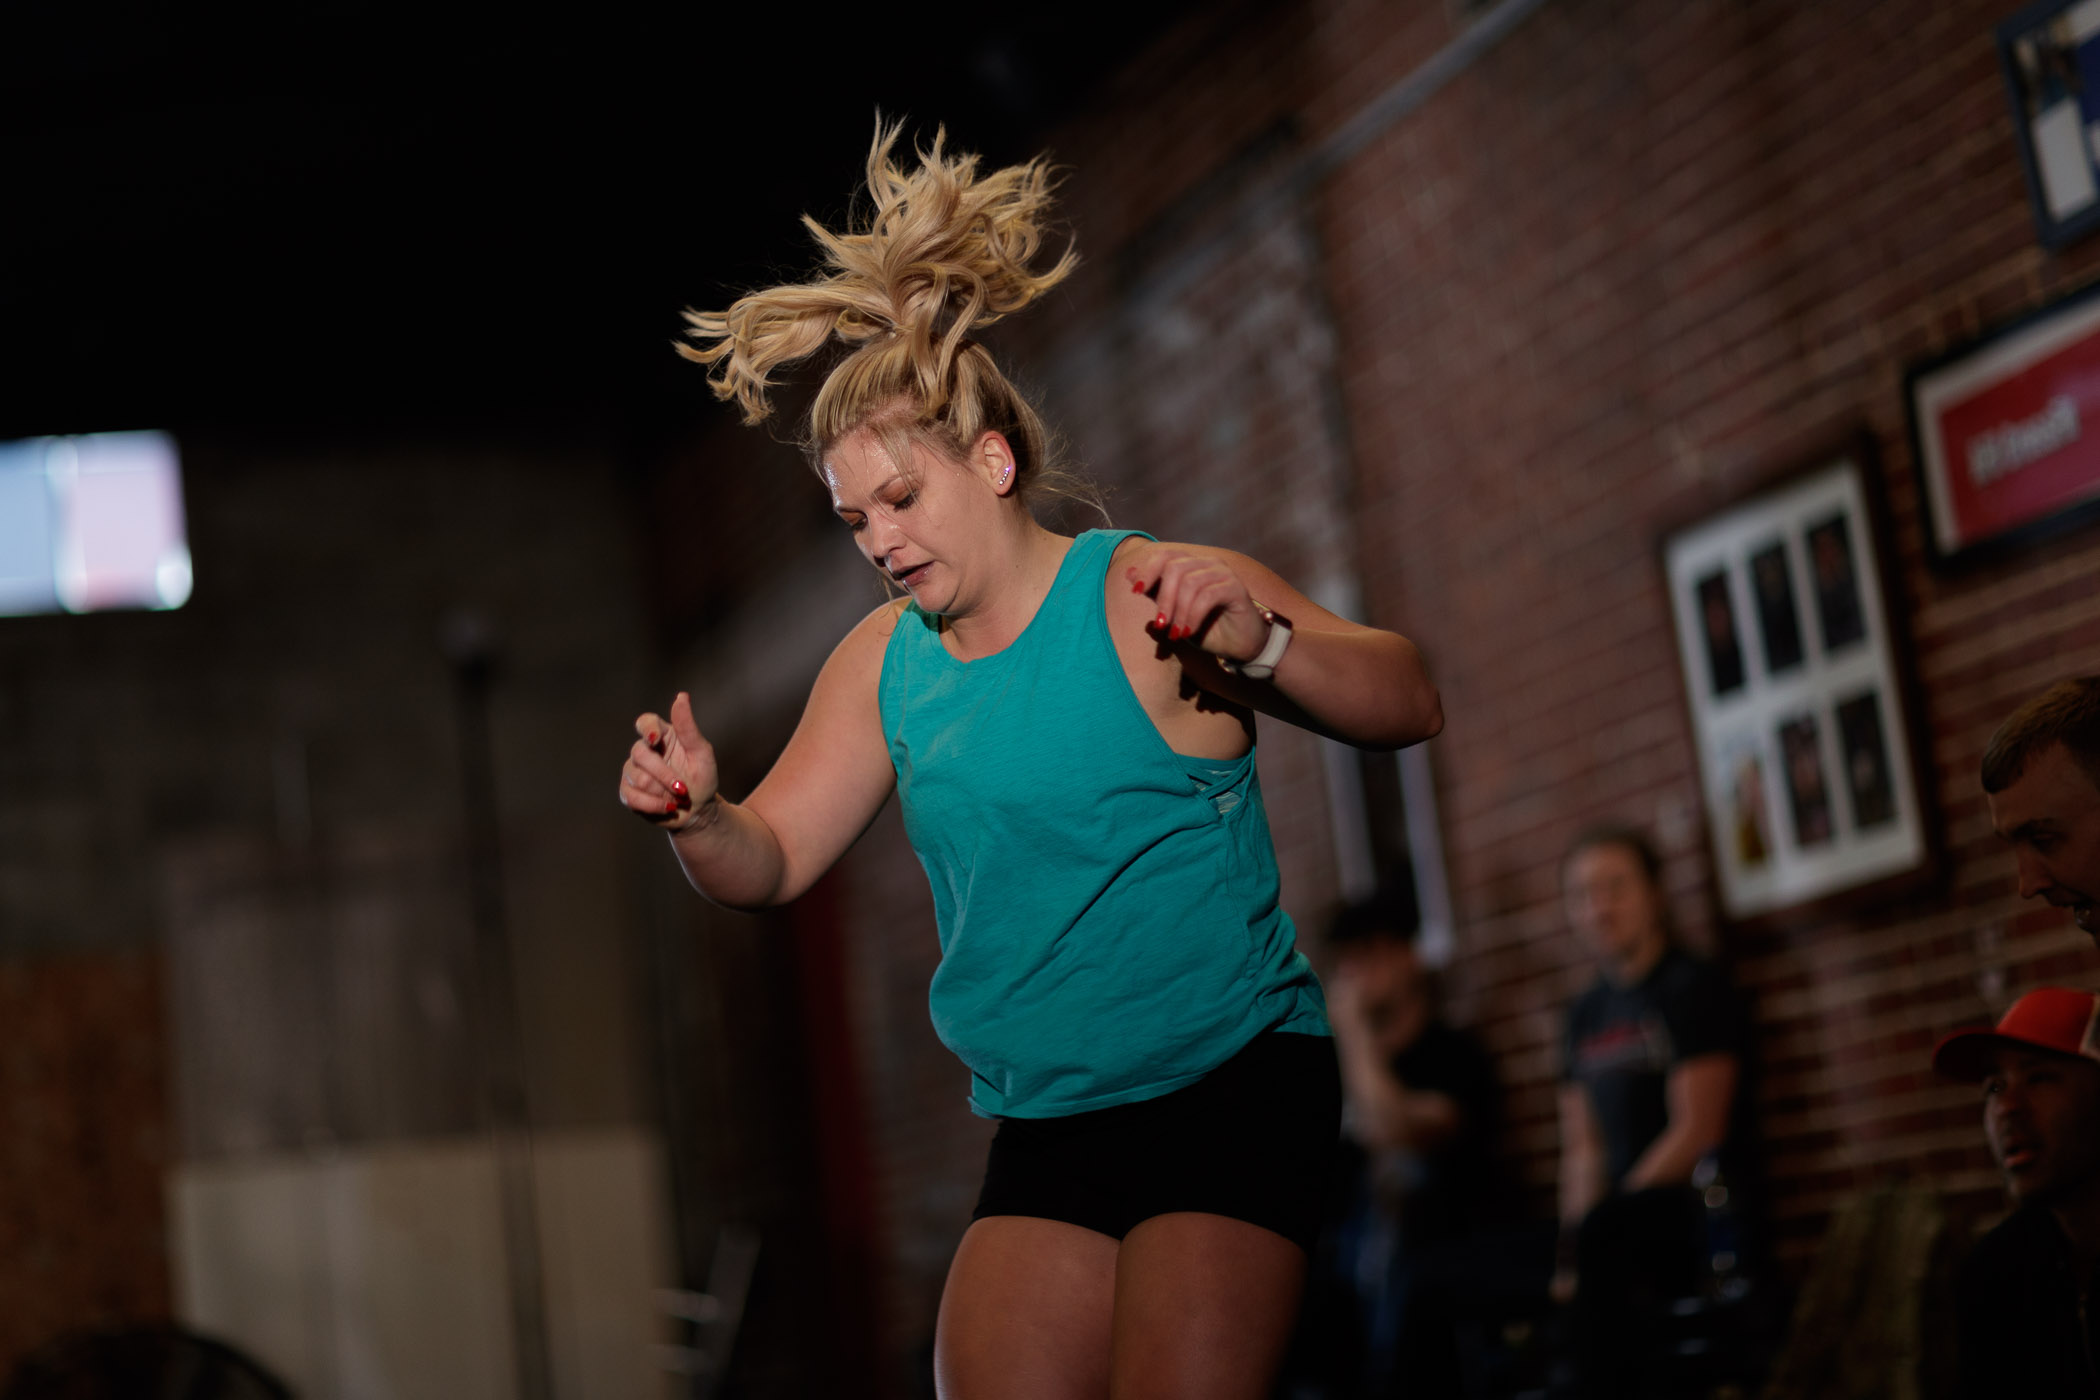 crossfit open sports photography blog 08